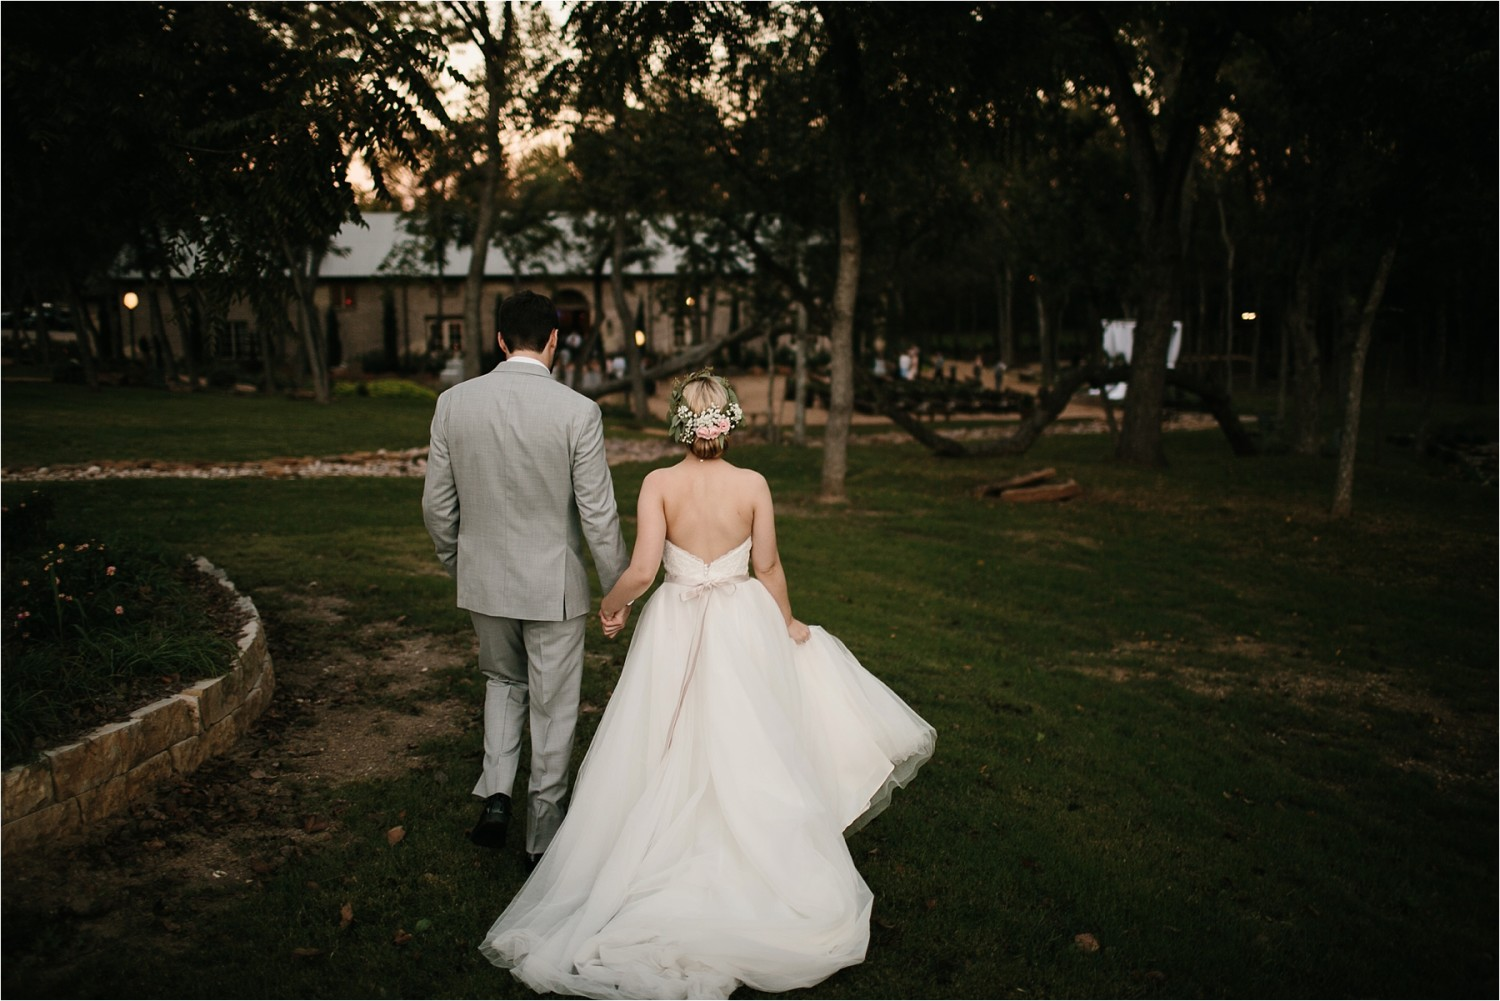 brad-lara-__-a-grey-and-blush-pink-intimate-wedding-at-hidden-waters-event-center-in-waxahachie-tx-by-north-texas-wedding-photographer-rachel-meagan-photography-_-075